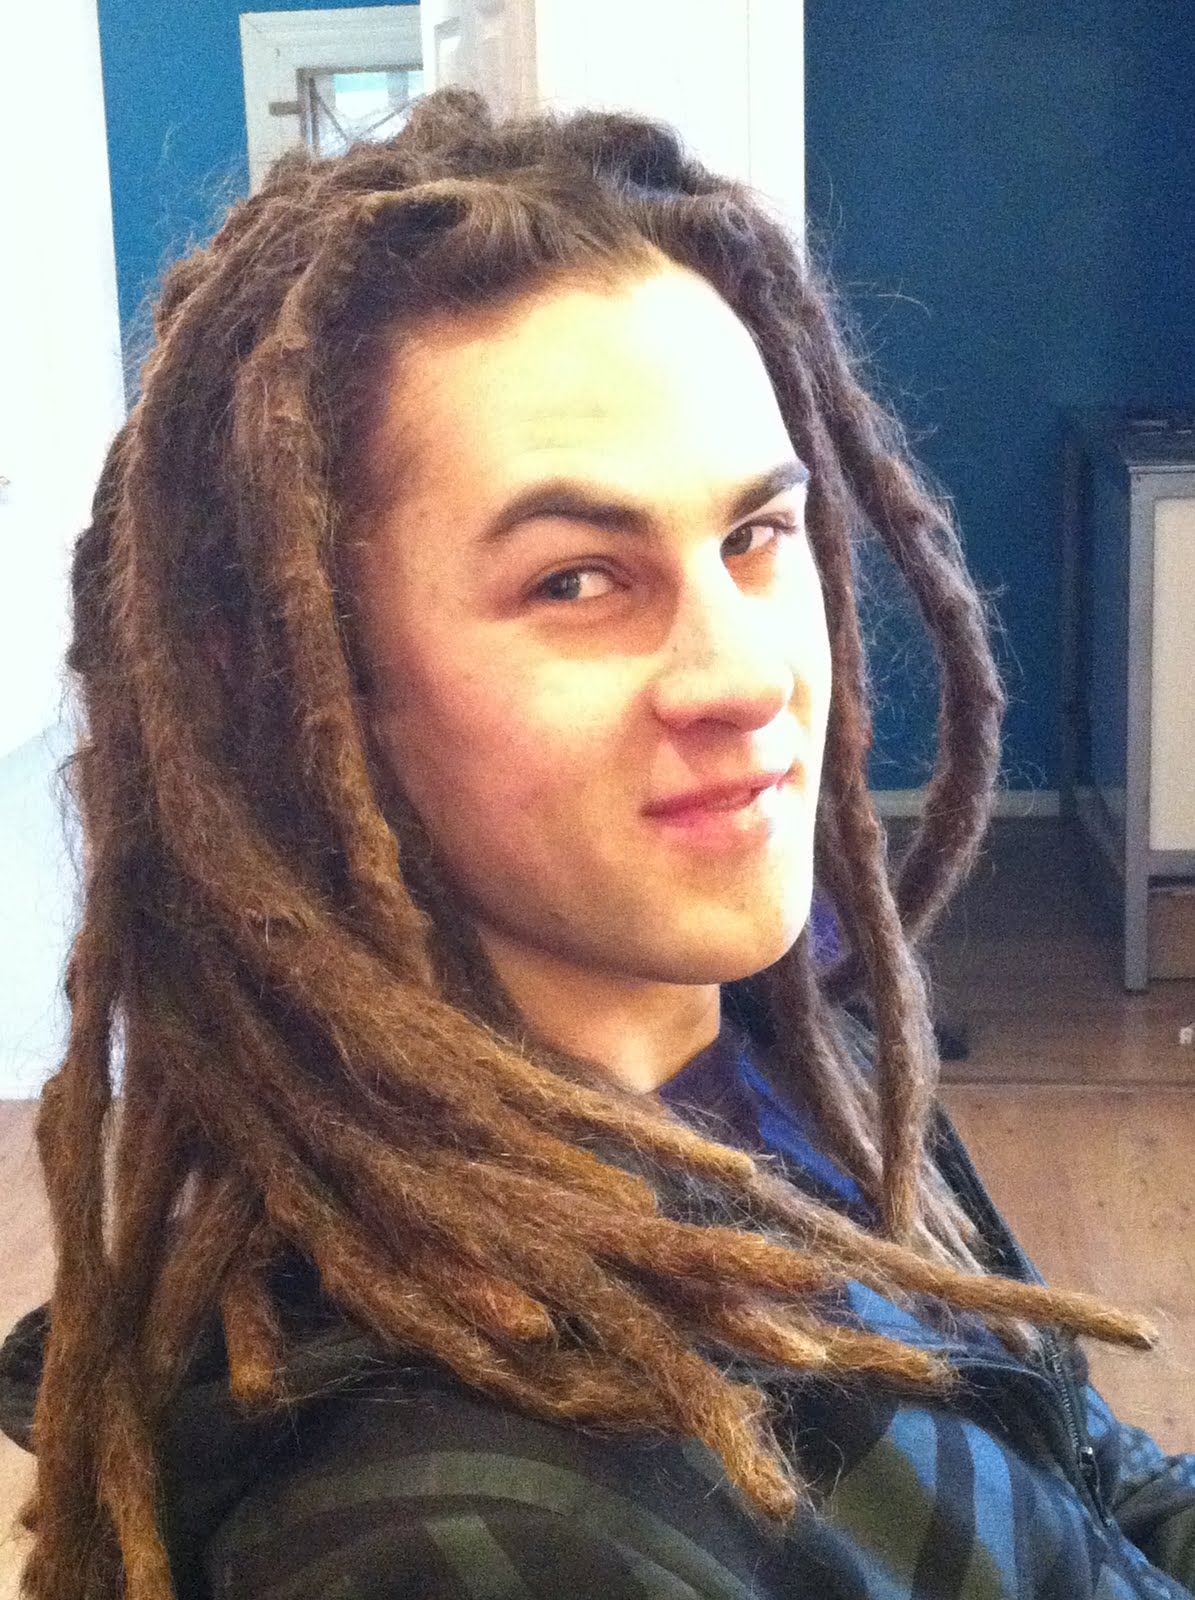 How do you find a hairdresser to do dreadlocks?